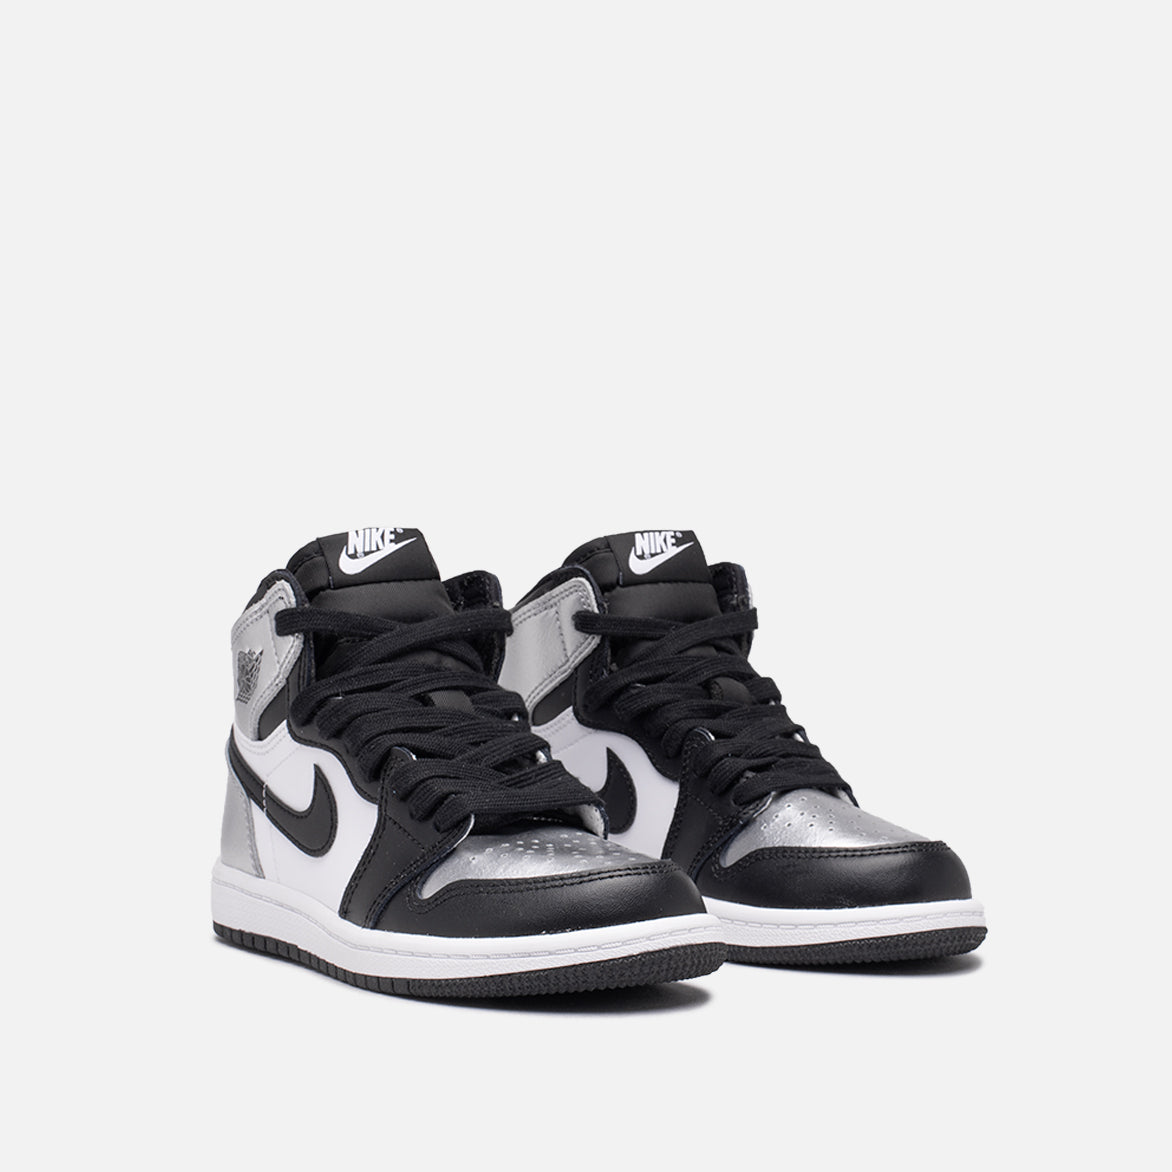 "AIR JORDAN 1 HIGH OG (PS) ""SILVER TOE"""